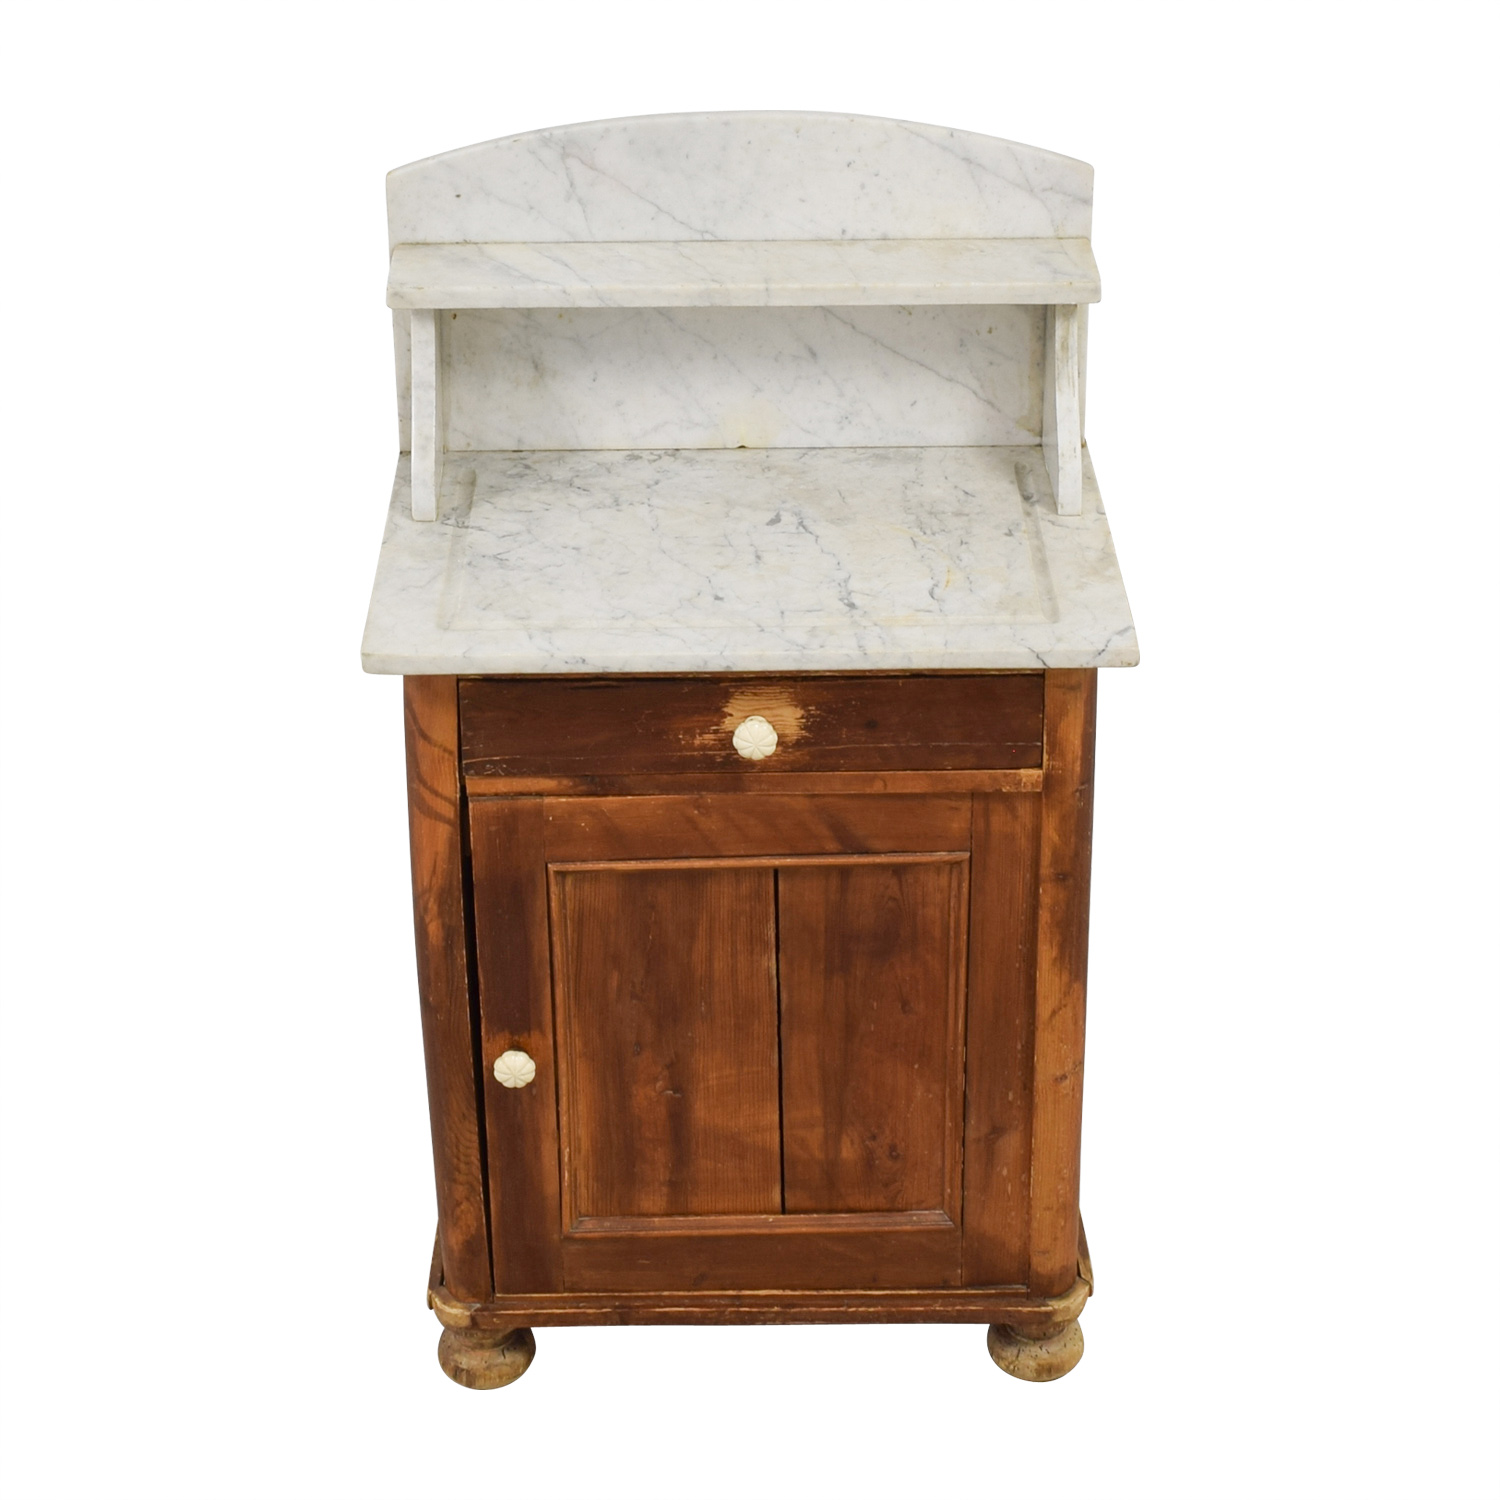 buy Evergreen Evergreen Rustic Marble Topped Storage Cabinet online